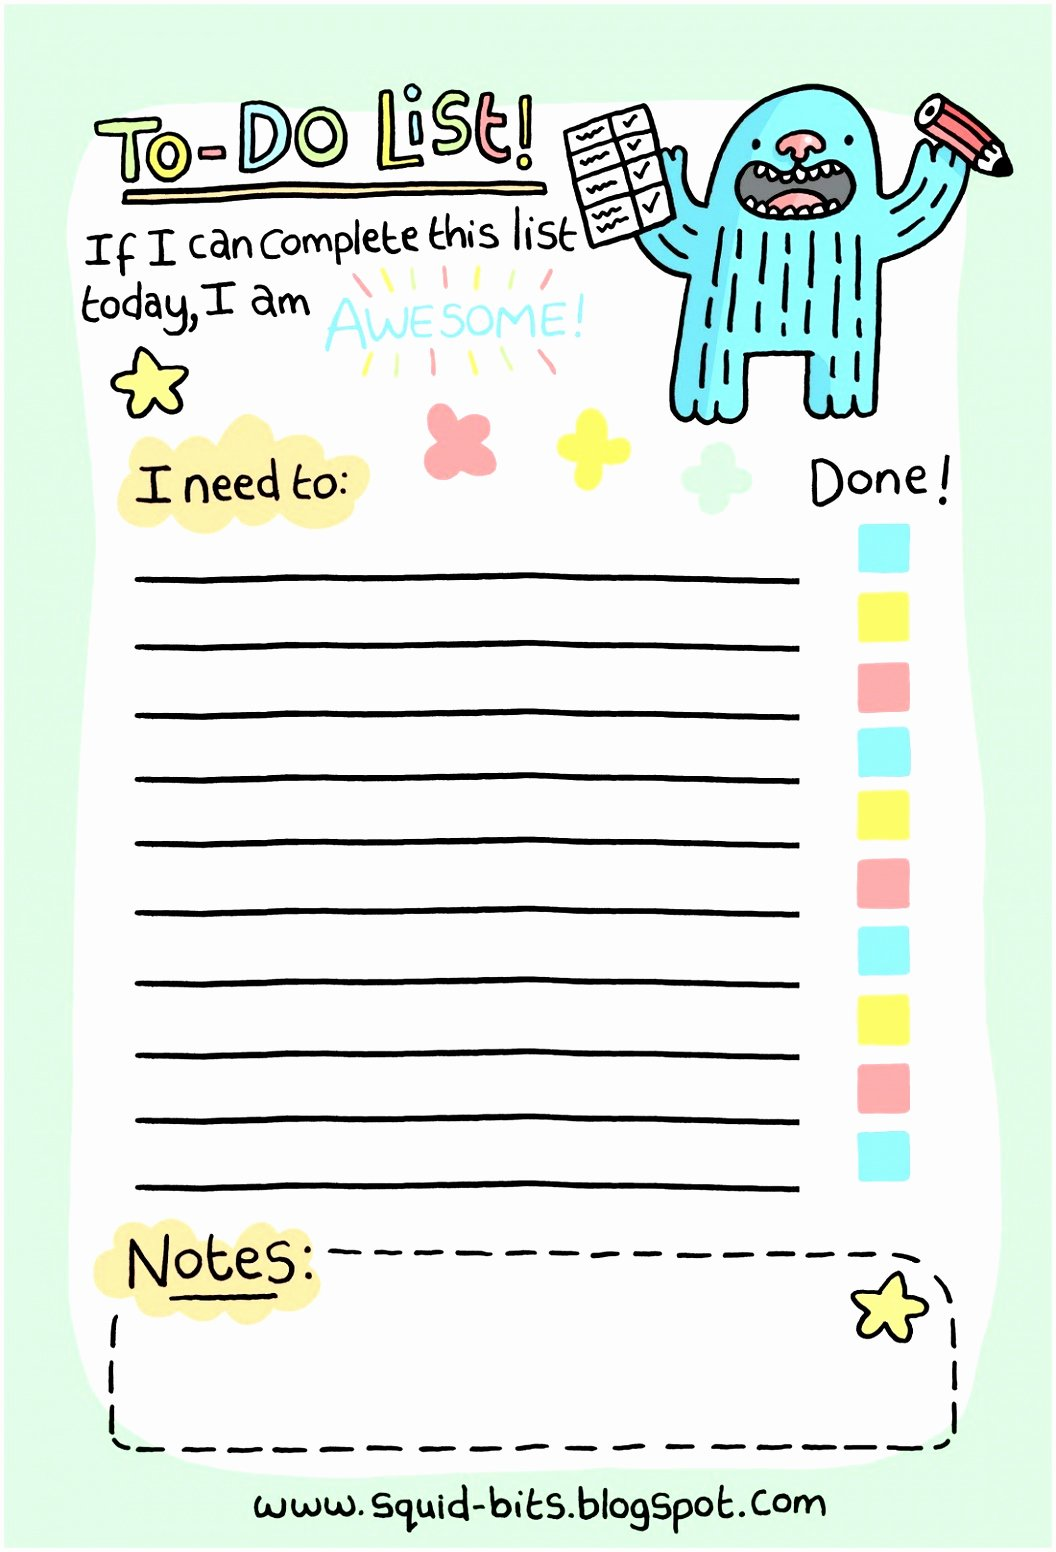 To Do List Template Word Awesome 7 Daily to Do List Template for Word Tioru